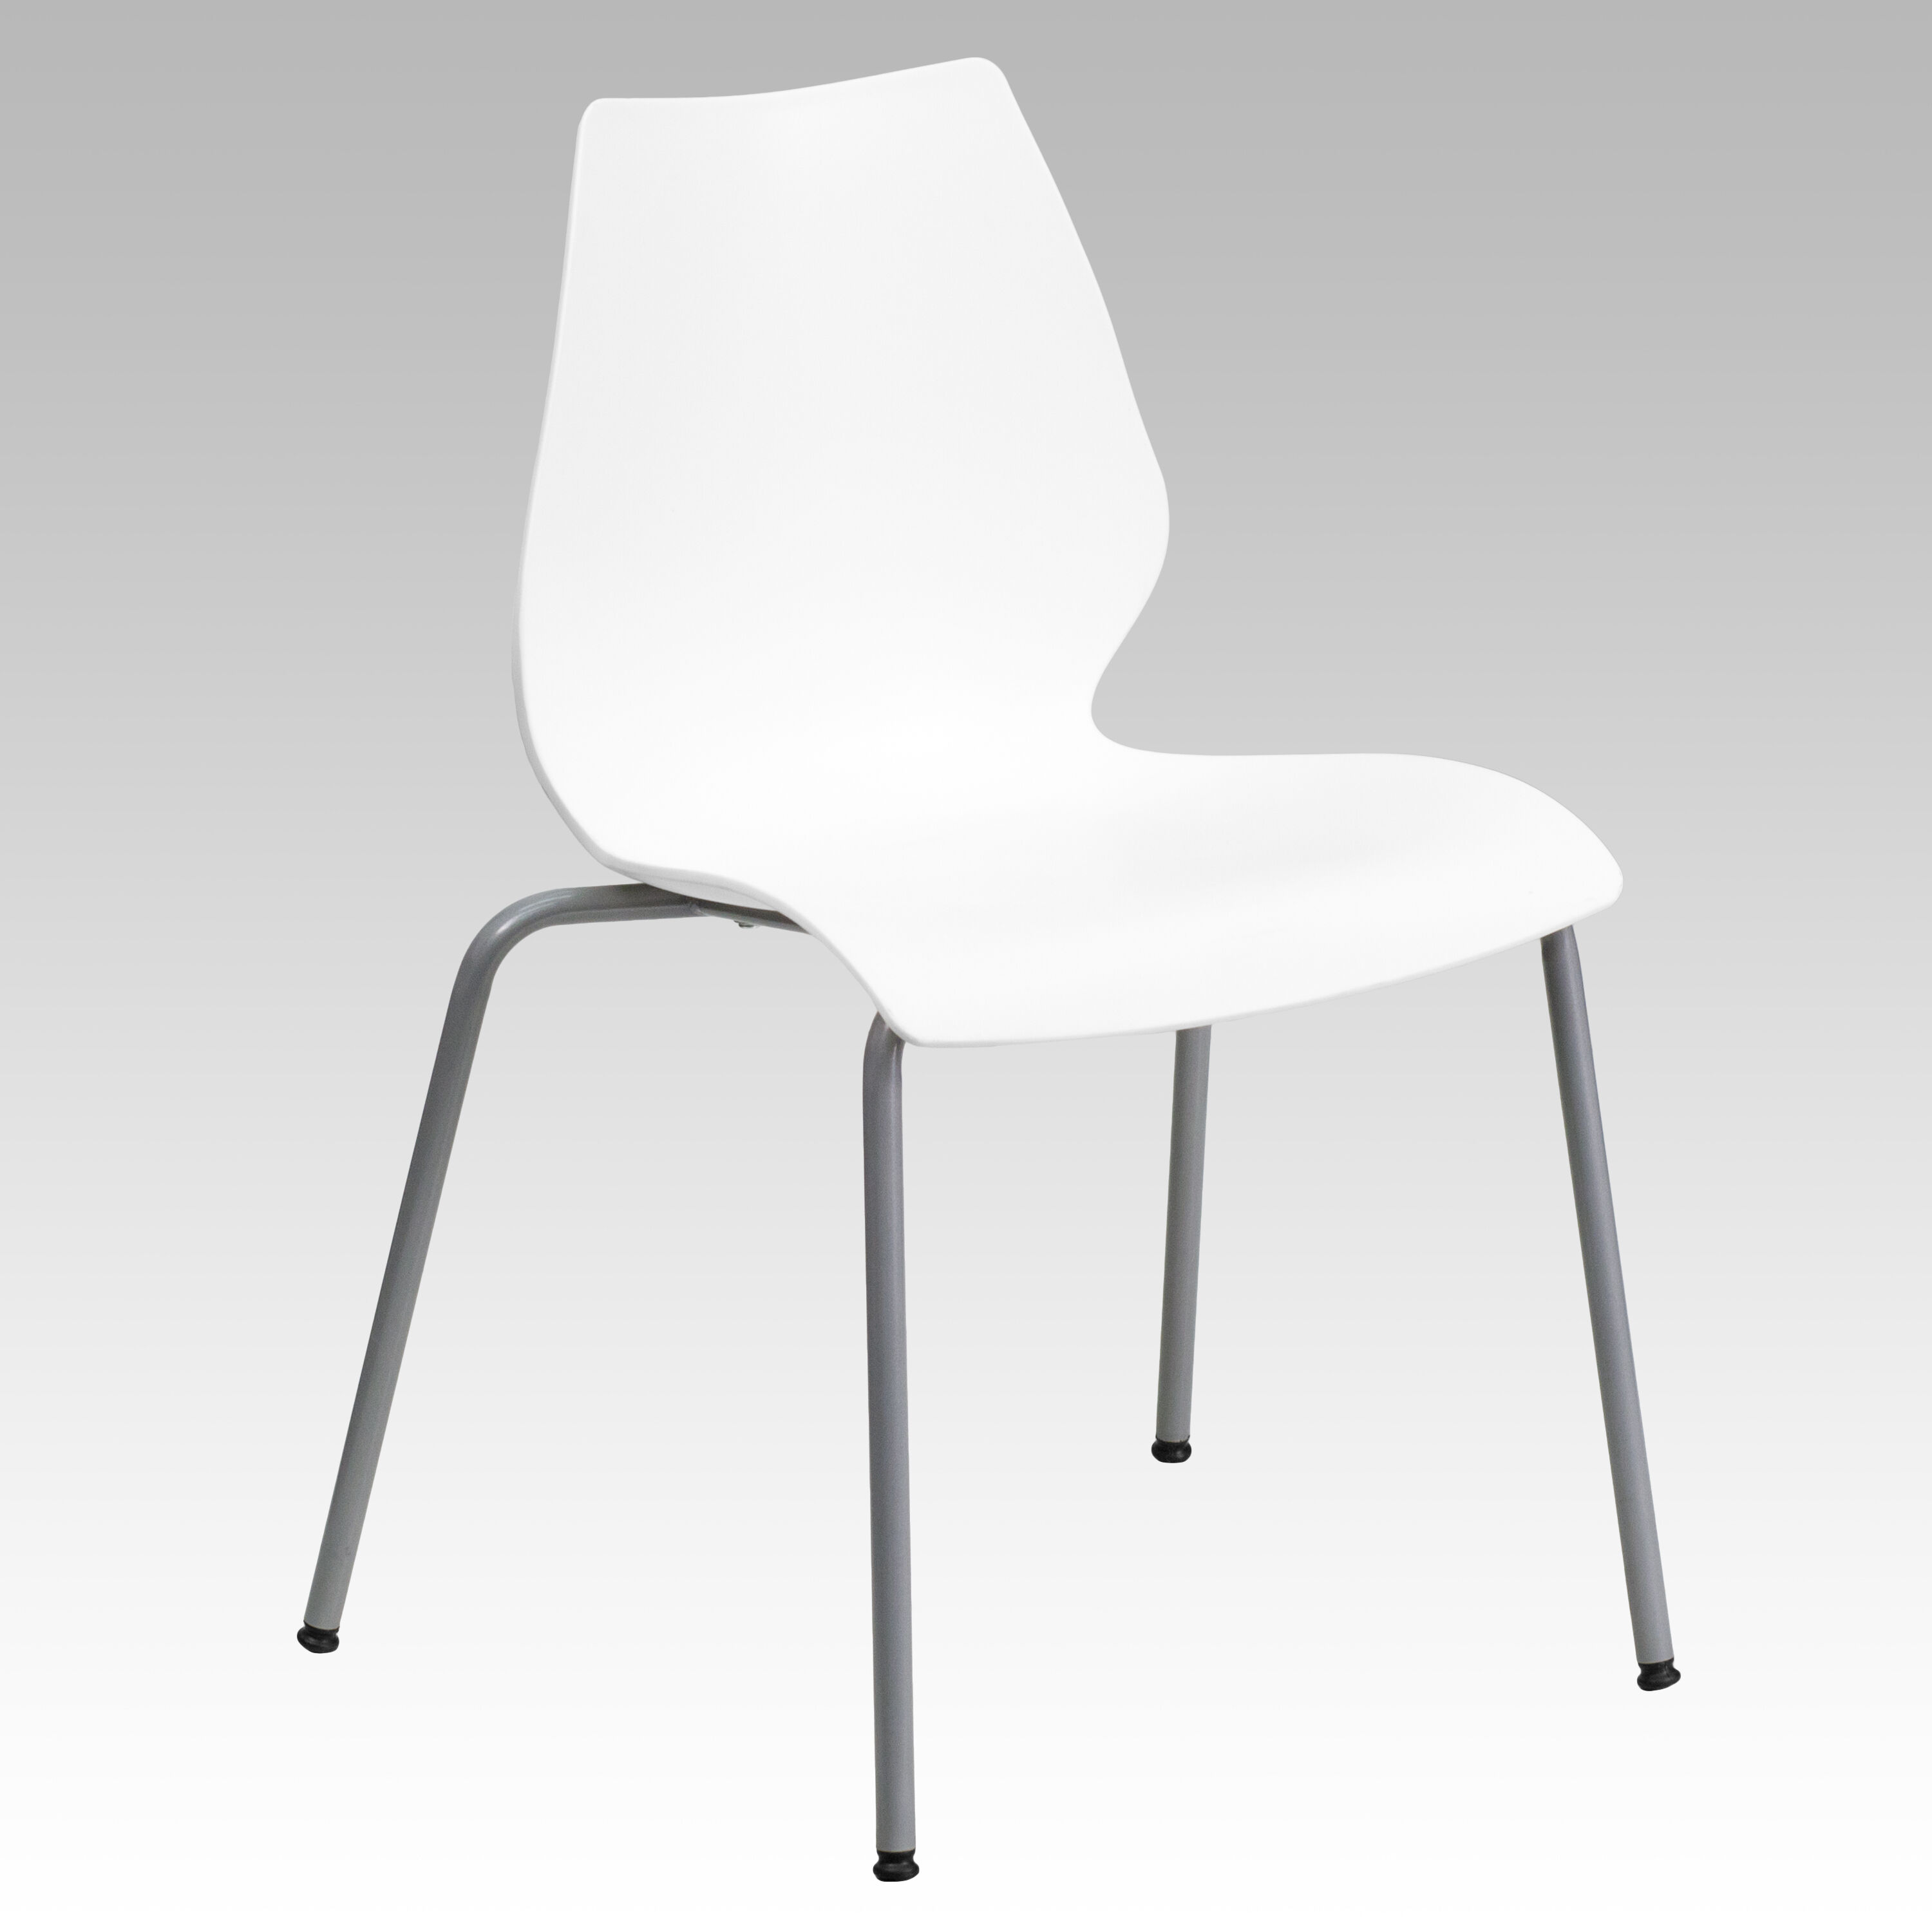 White Stackable Chairs White Plastic Stack Chair Rut 288 White Gg